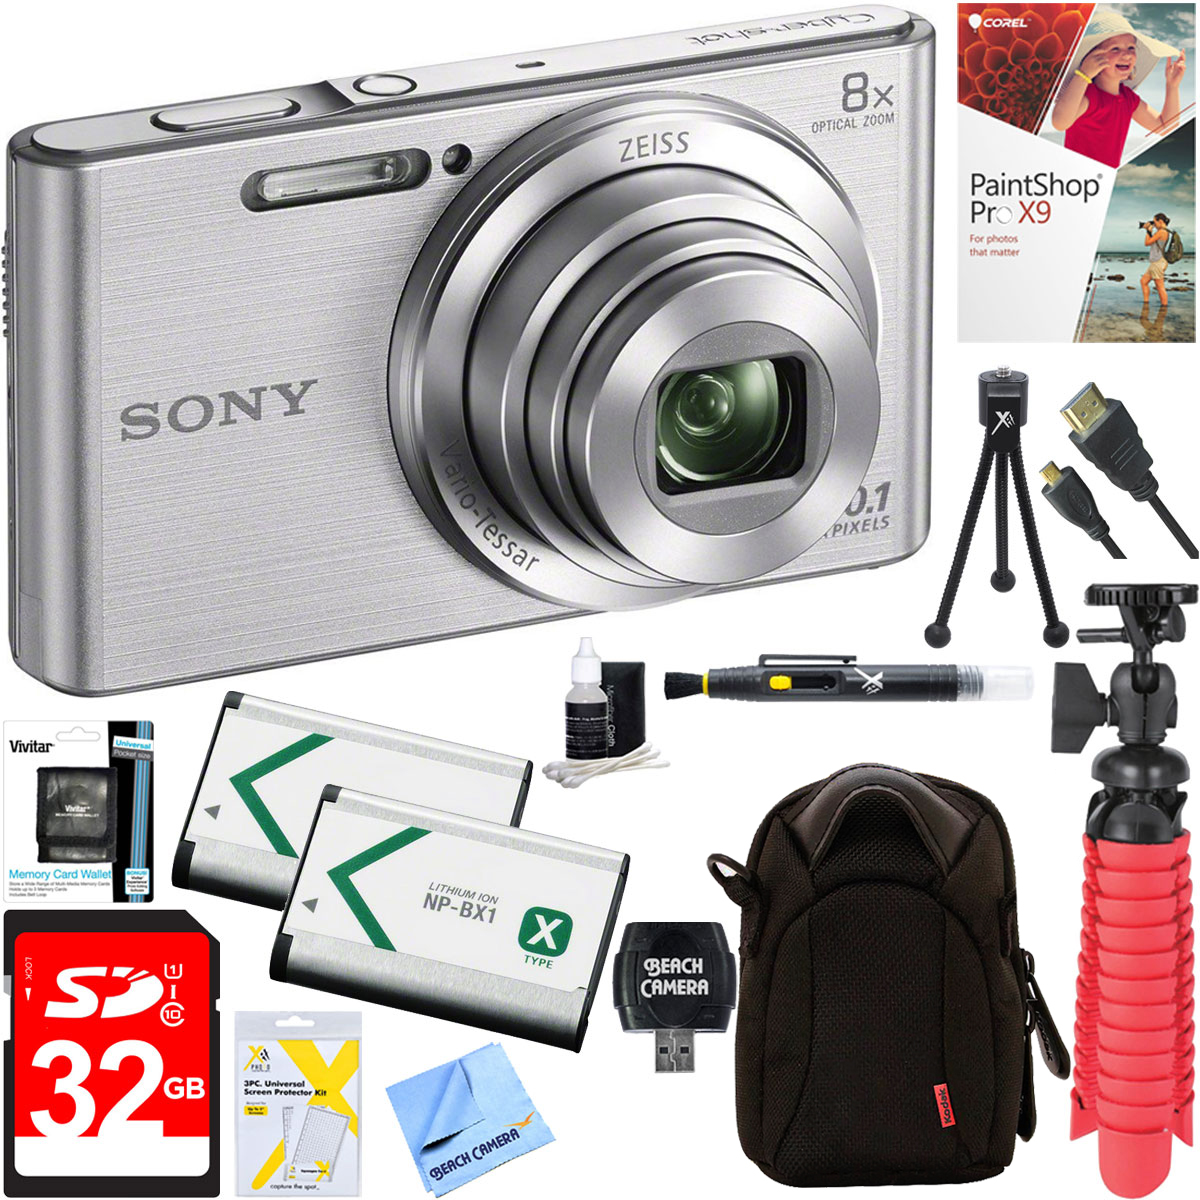 Sony DSC-W830 Cyber-shot 20.1MP 2.7-Inch LCD Digital Camera (Silver) + 32GB SDHC Memory Dual Battery Kit + Accessory Bundle